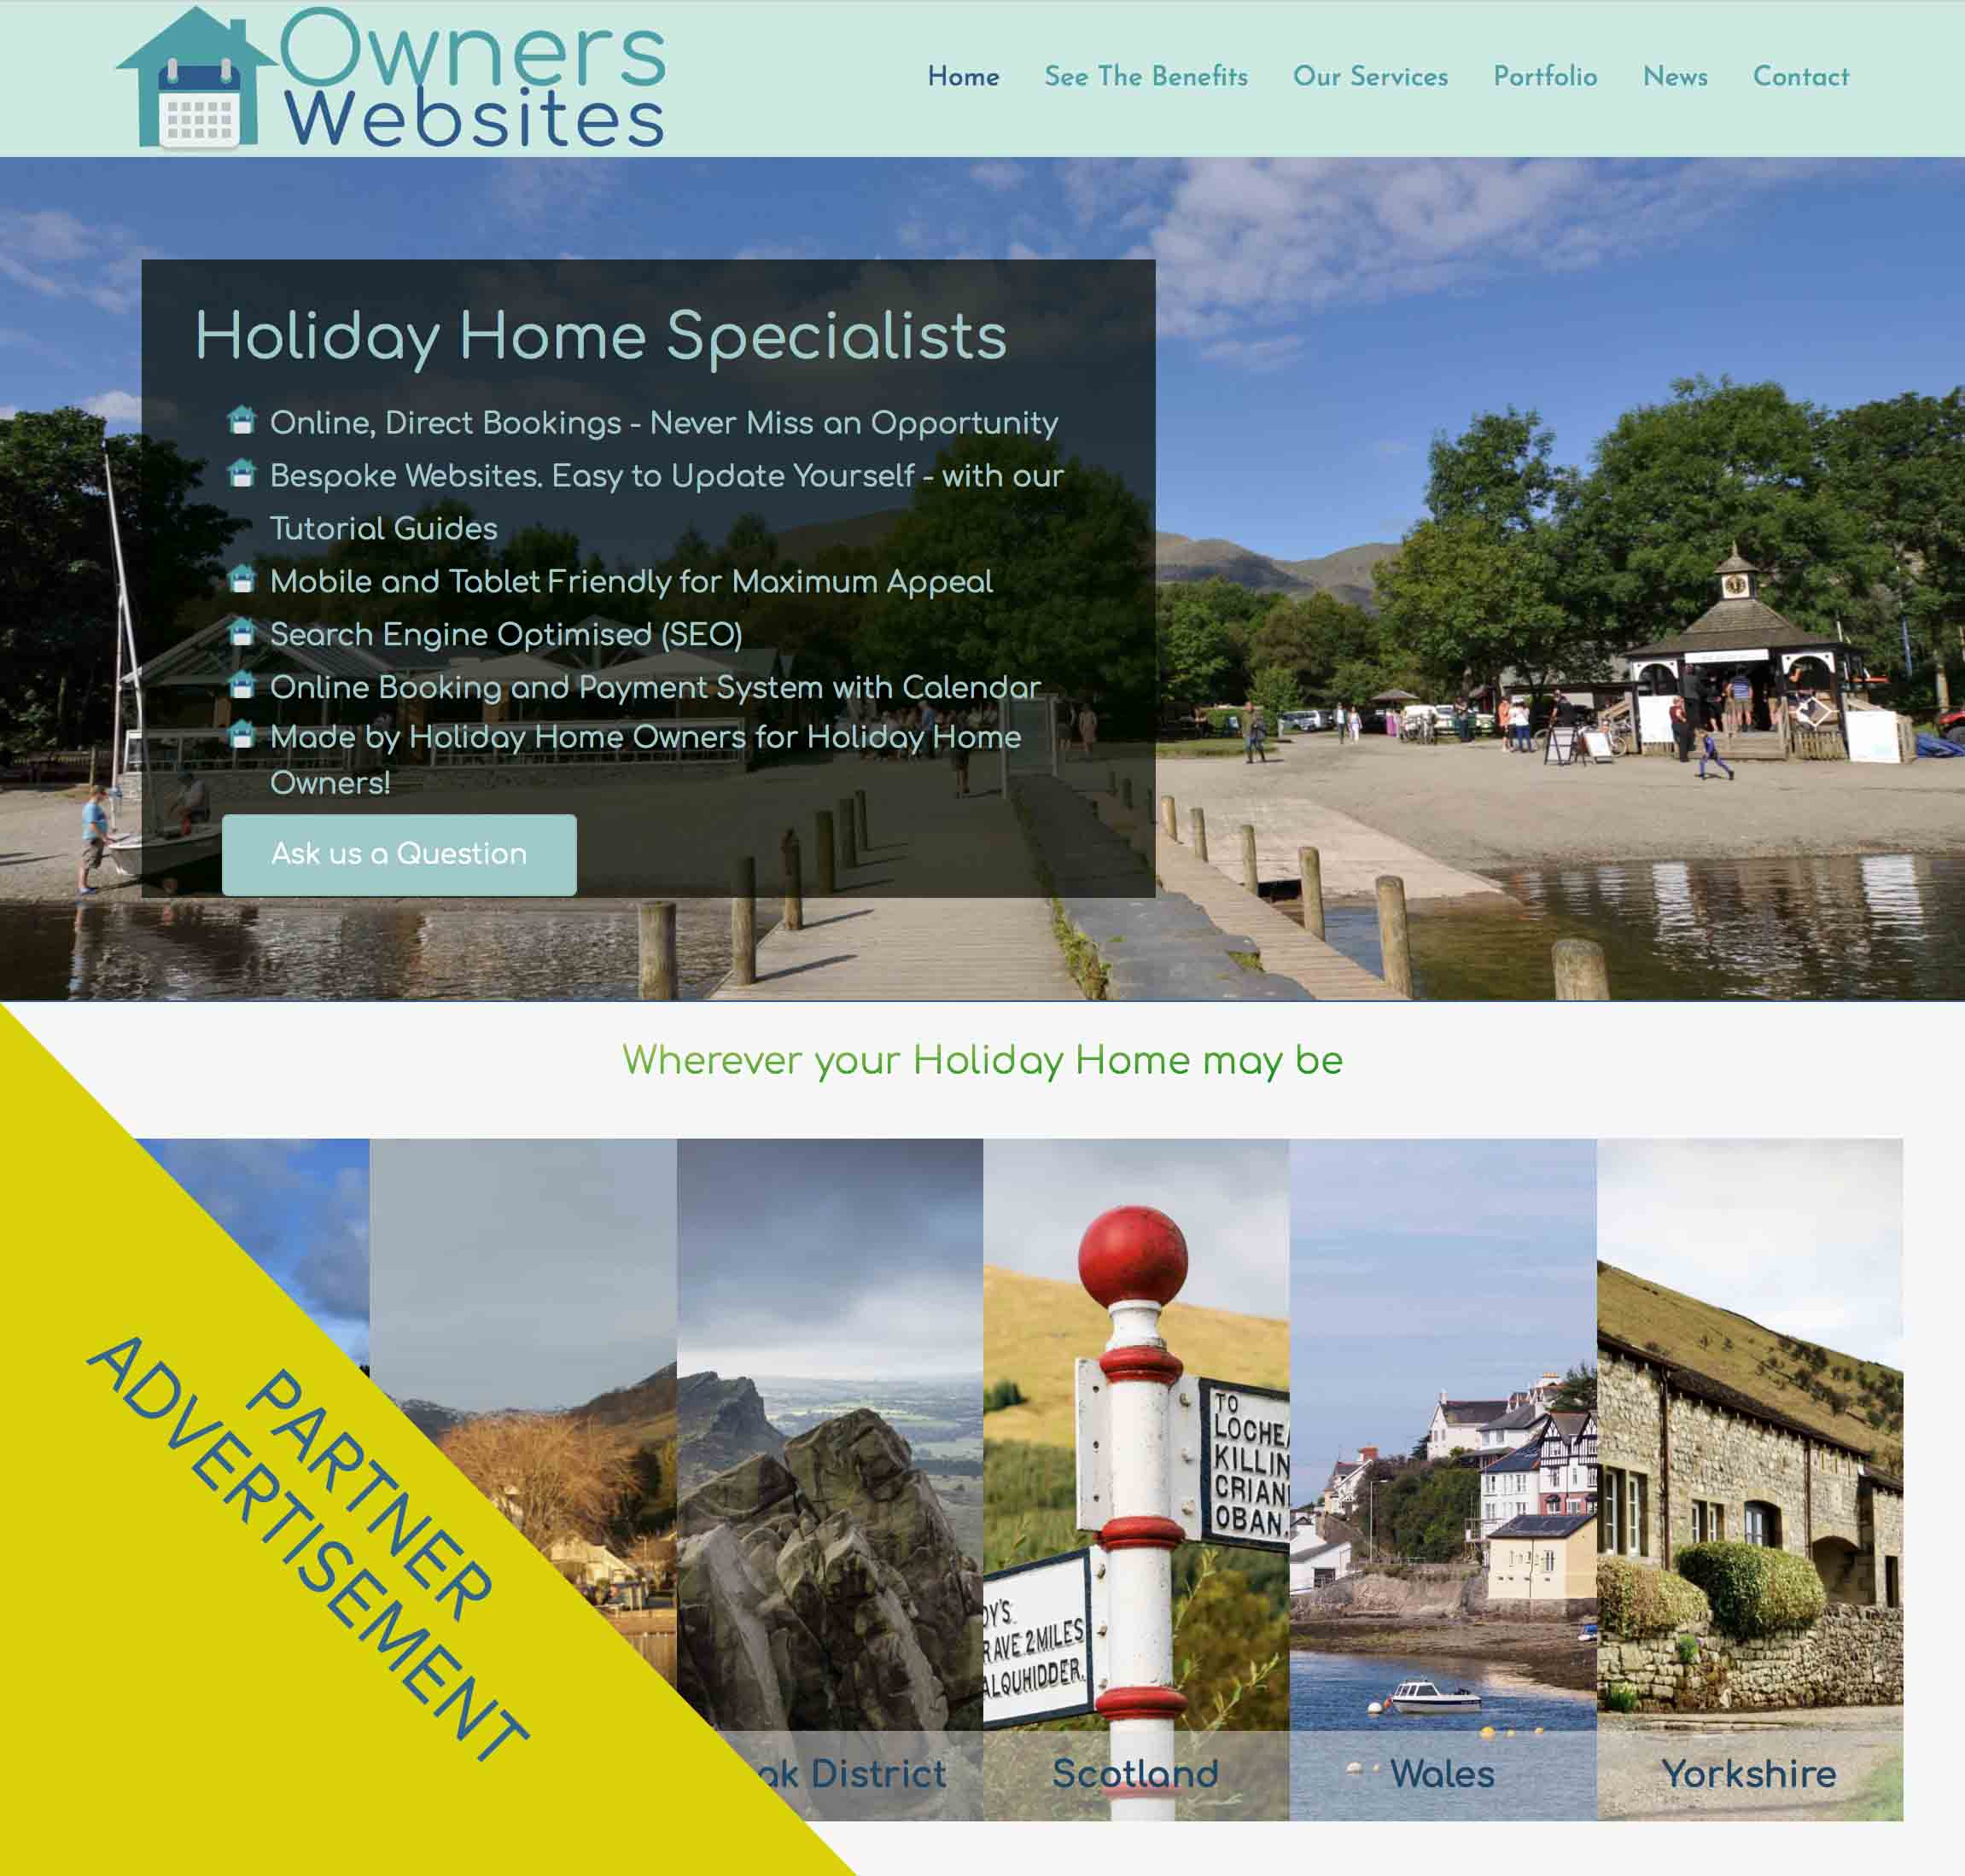 Owners Websites Web Design service for Holiday Homes